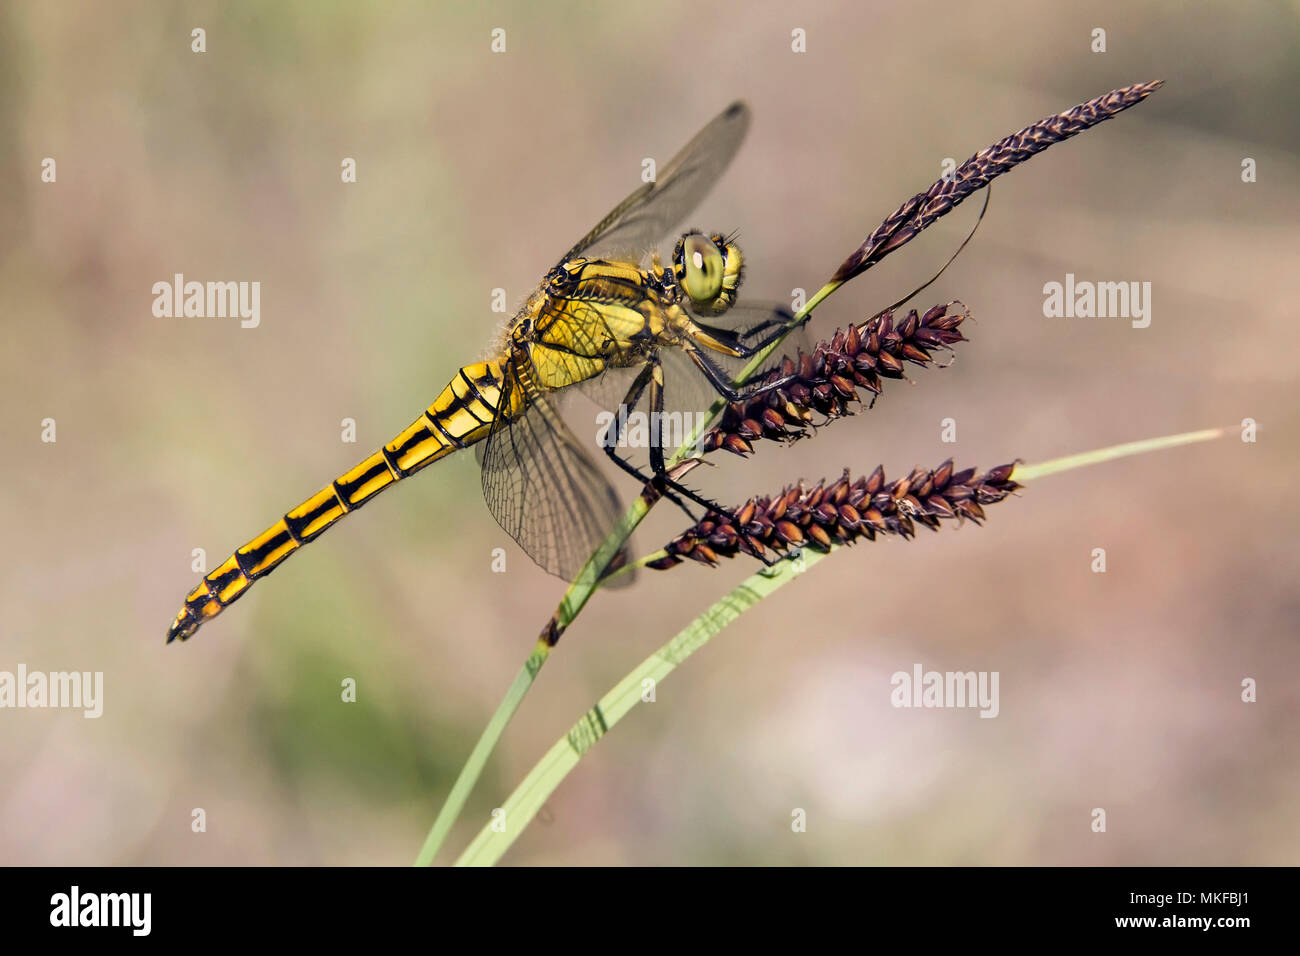 Black-tailed skimmer (Orthetrum cancellatum) female resting on a rod of rush in spring, forest pond, massif de la Reine, Lorraine, France - Stock Image